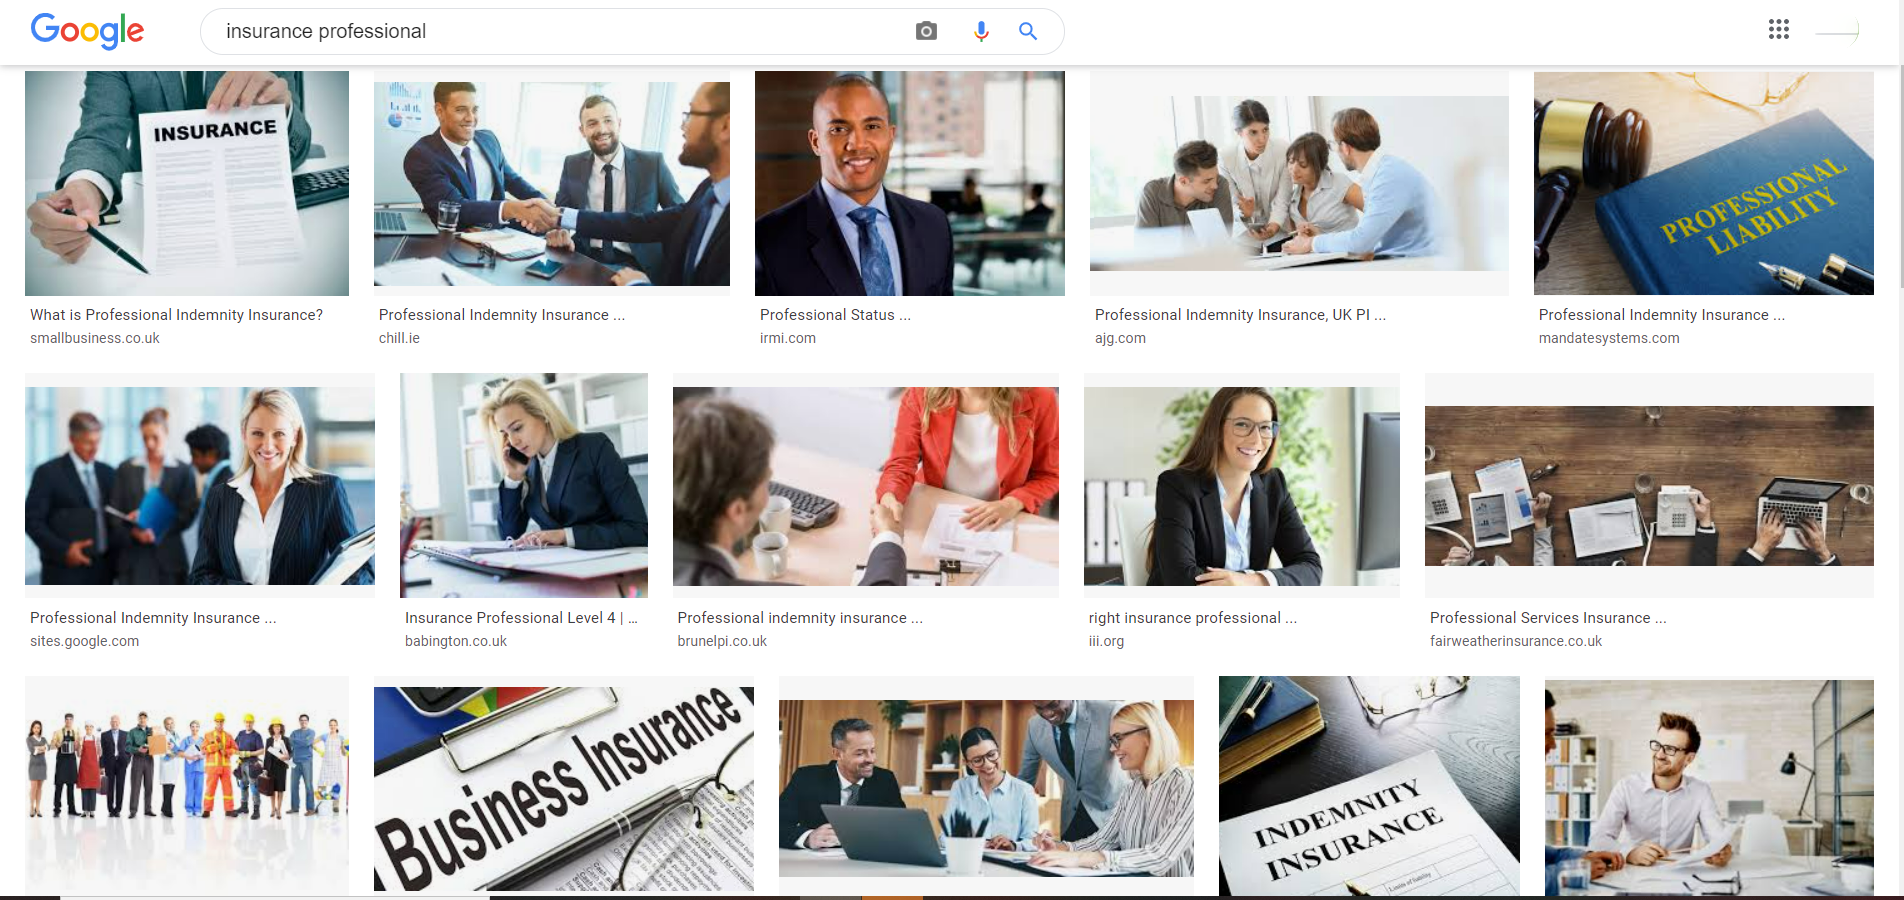 Google's image of an insurance professional